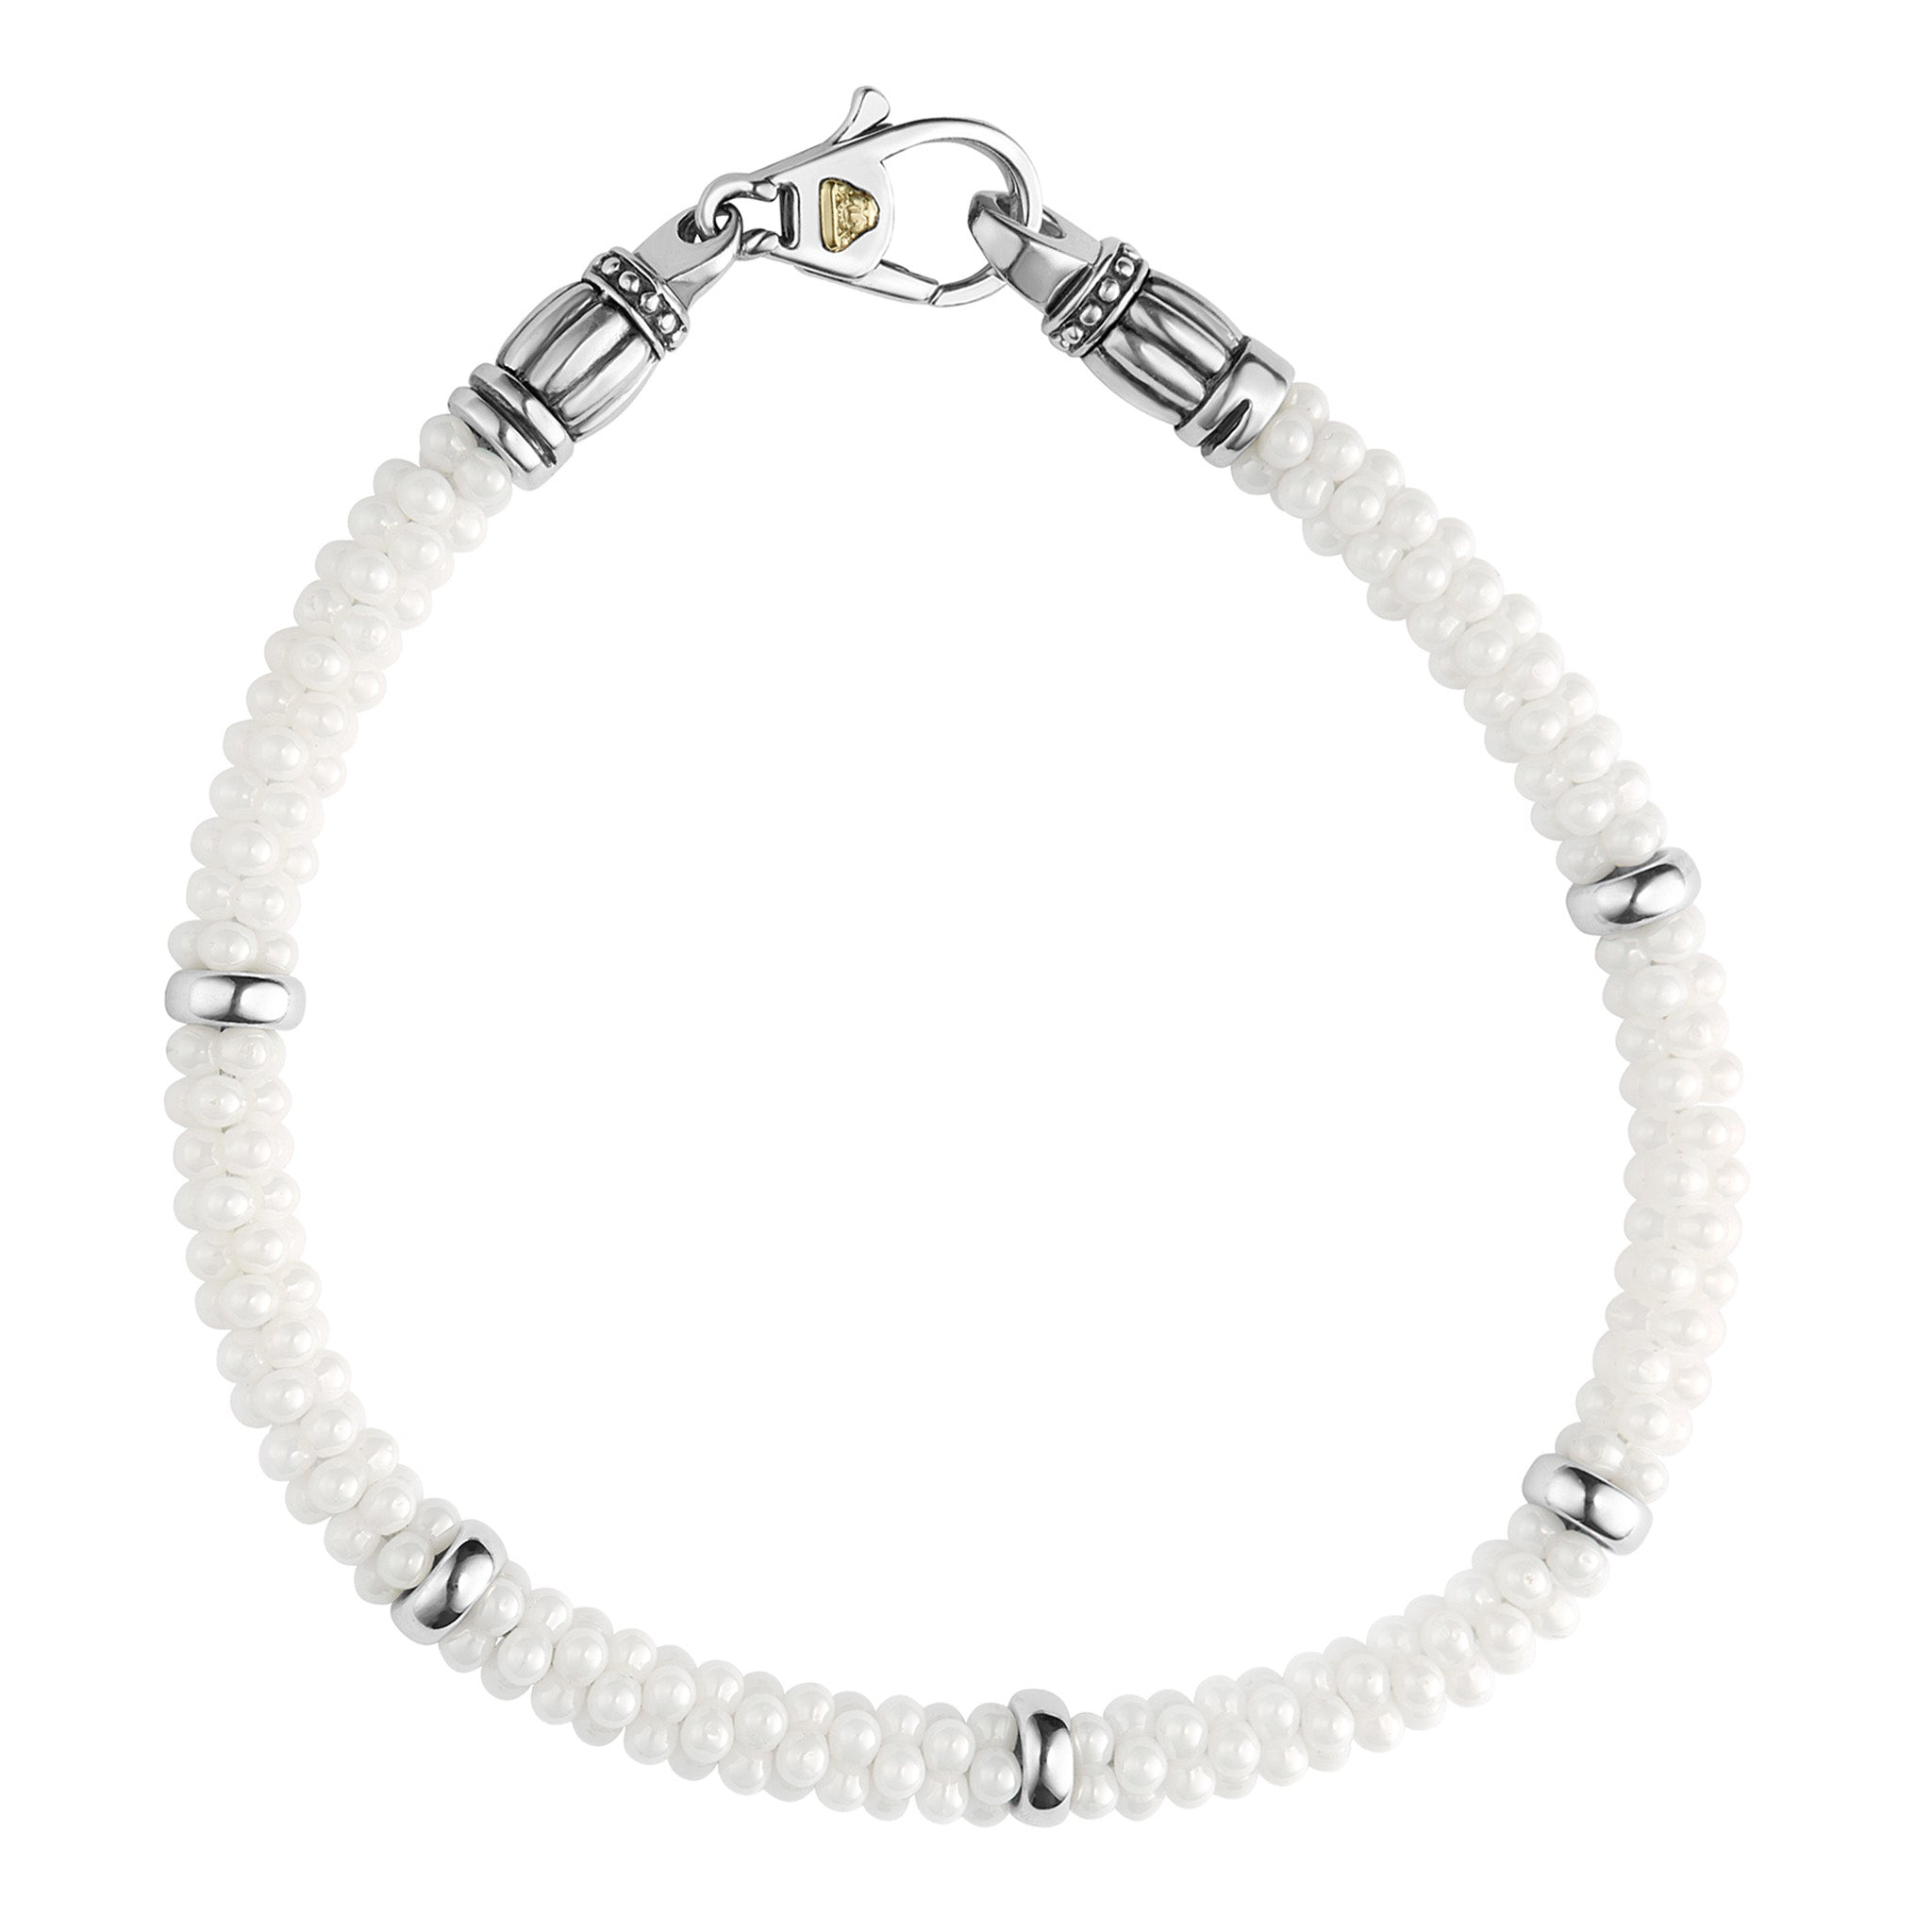 Lagos 'White Caviar' 5mm Beaded Bracelet